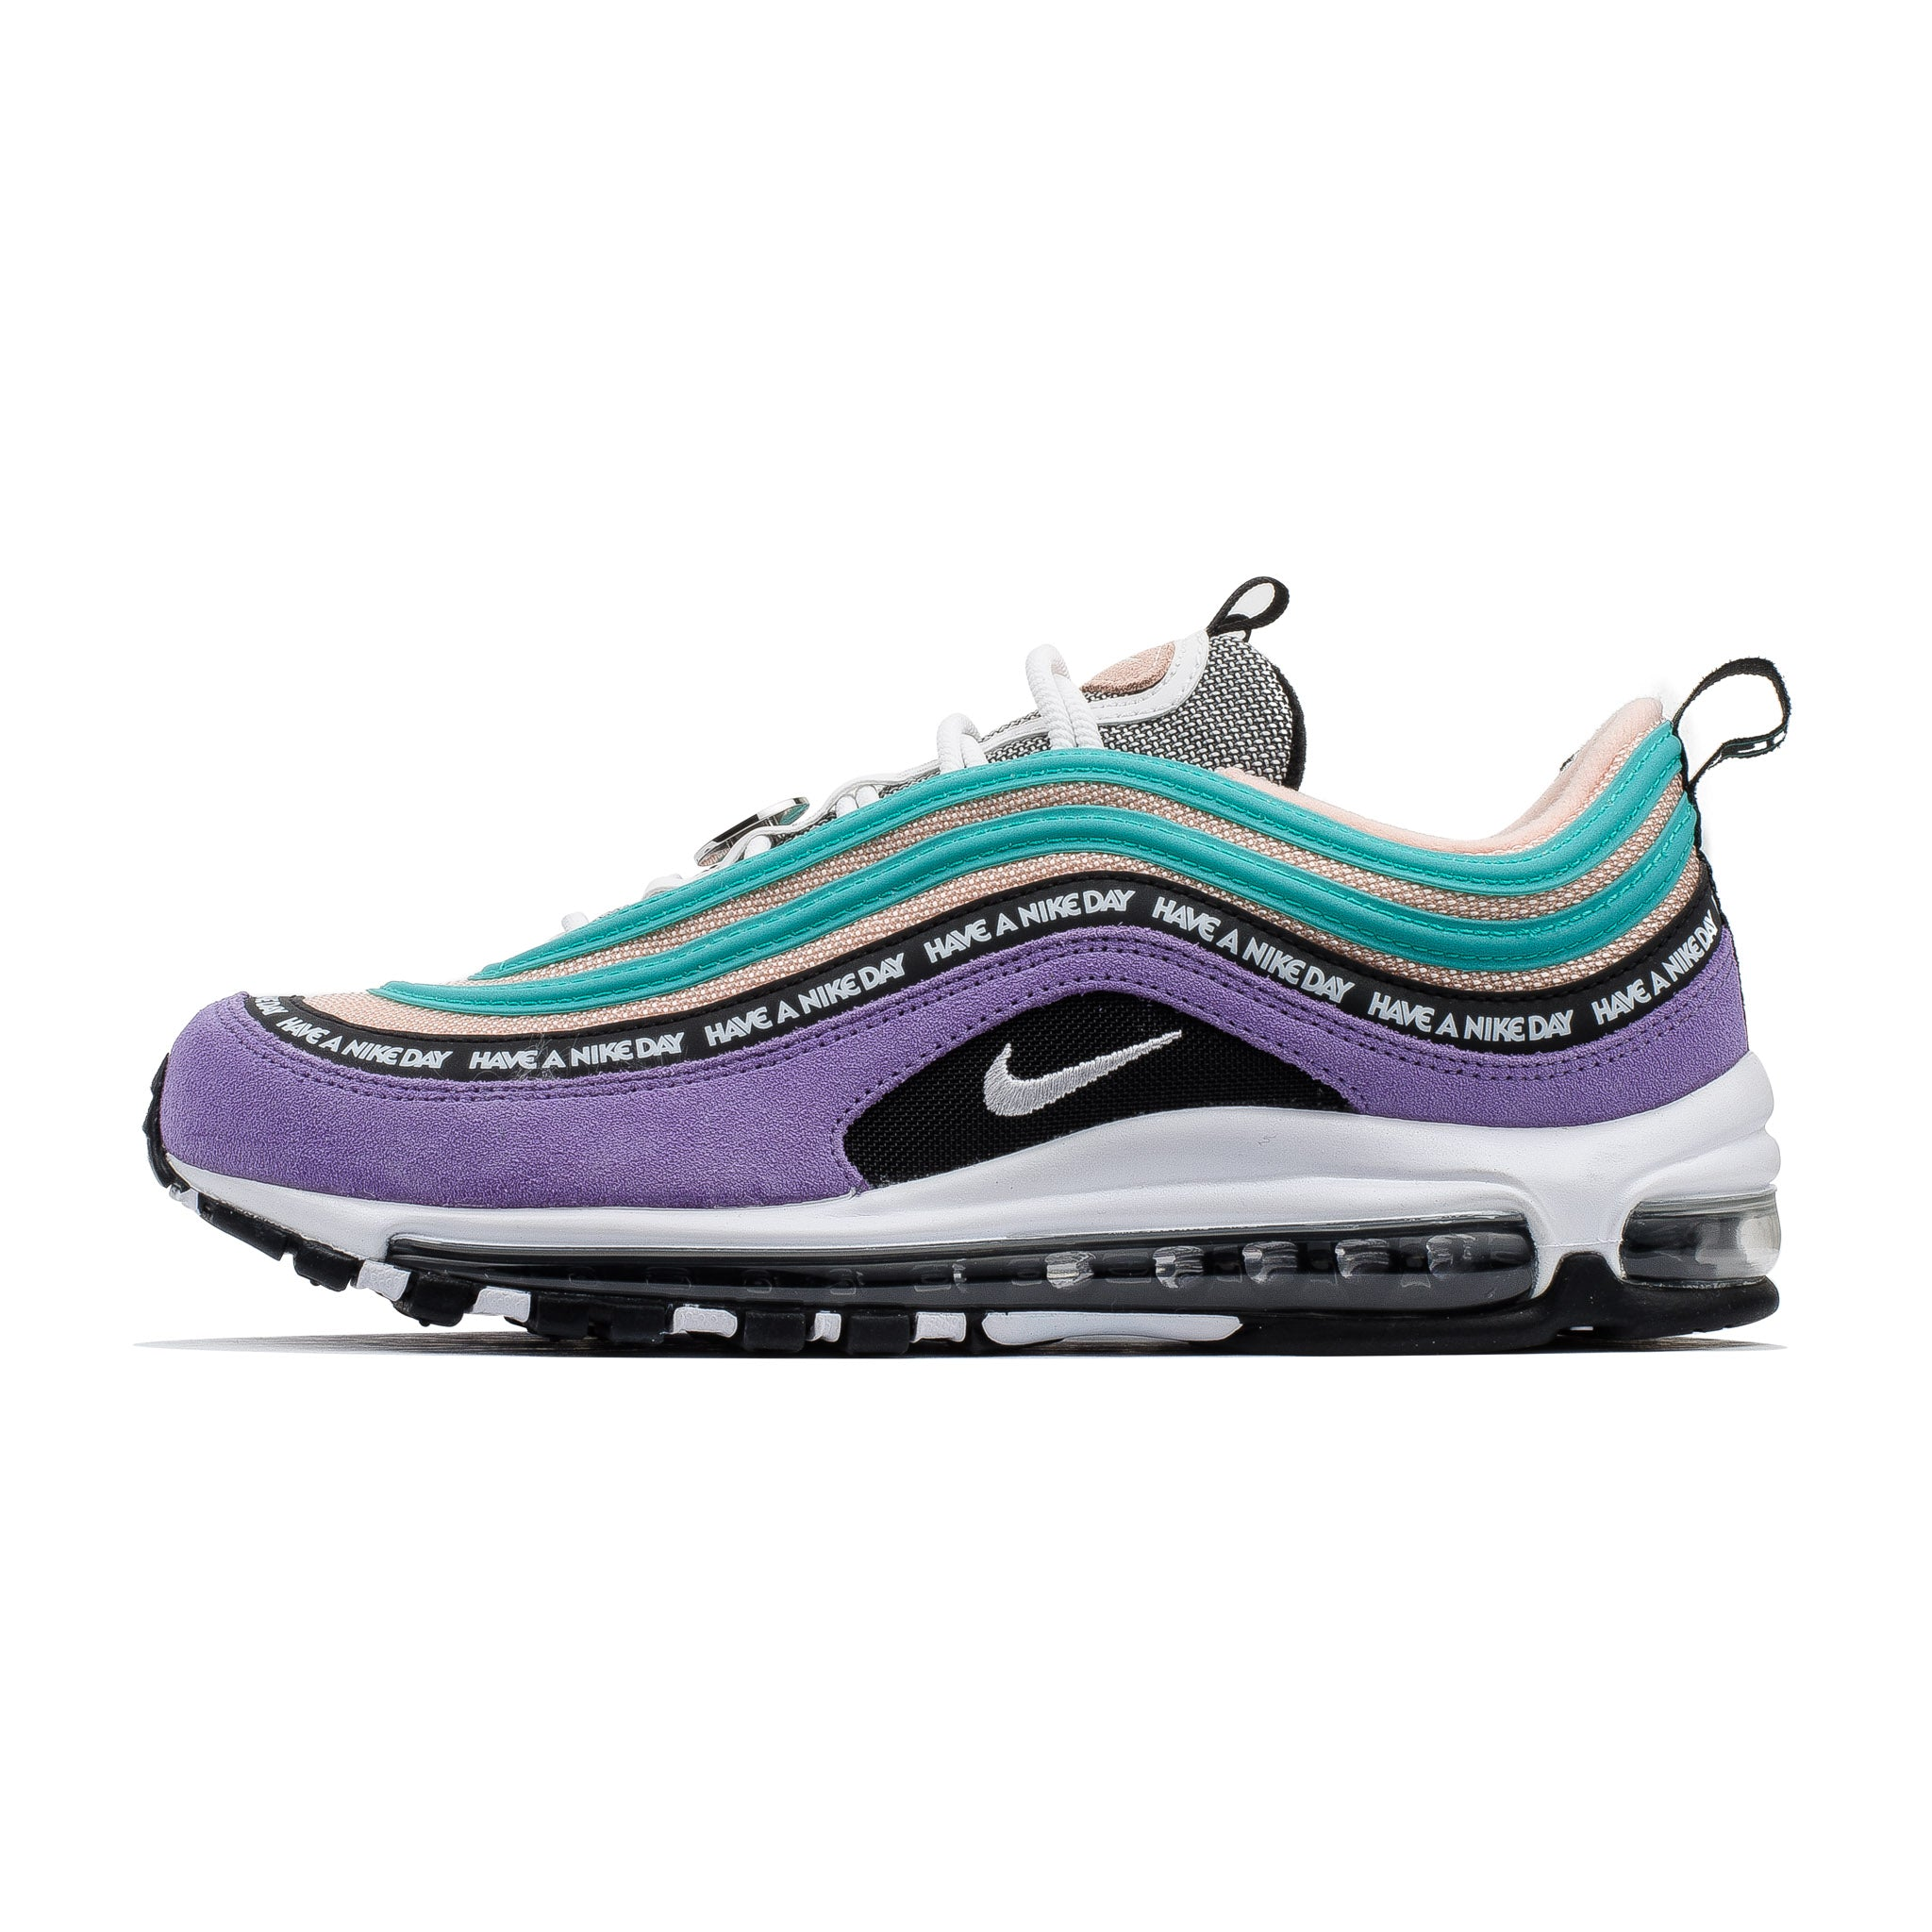 promo code 5f063 2e1b0 Air Max 97 ND BQ9130-500 Space Purple